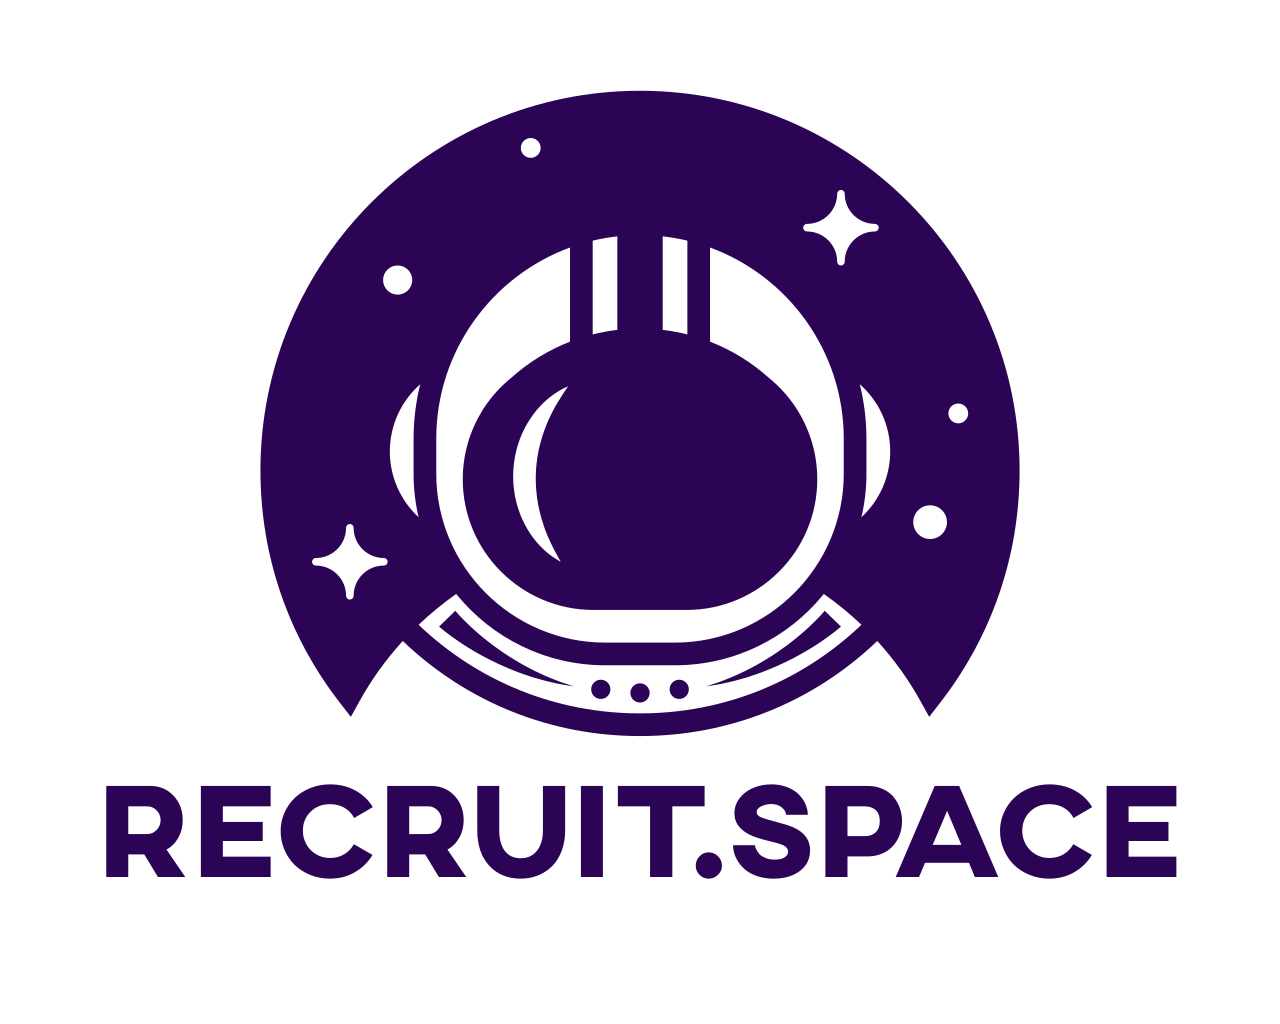 Recruit.Space